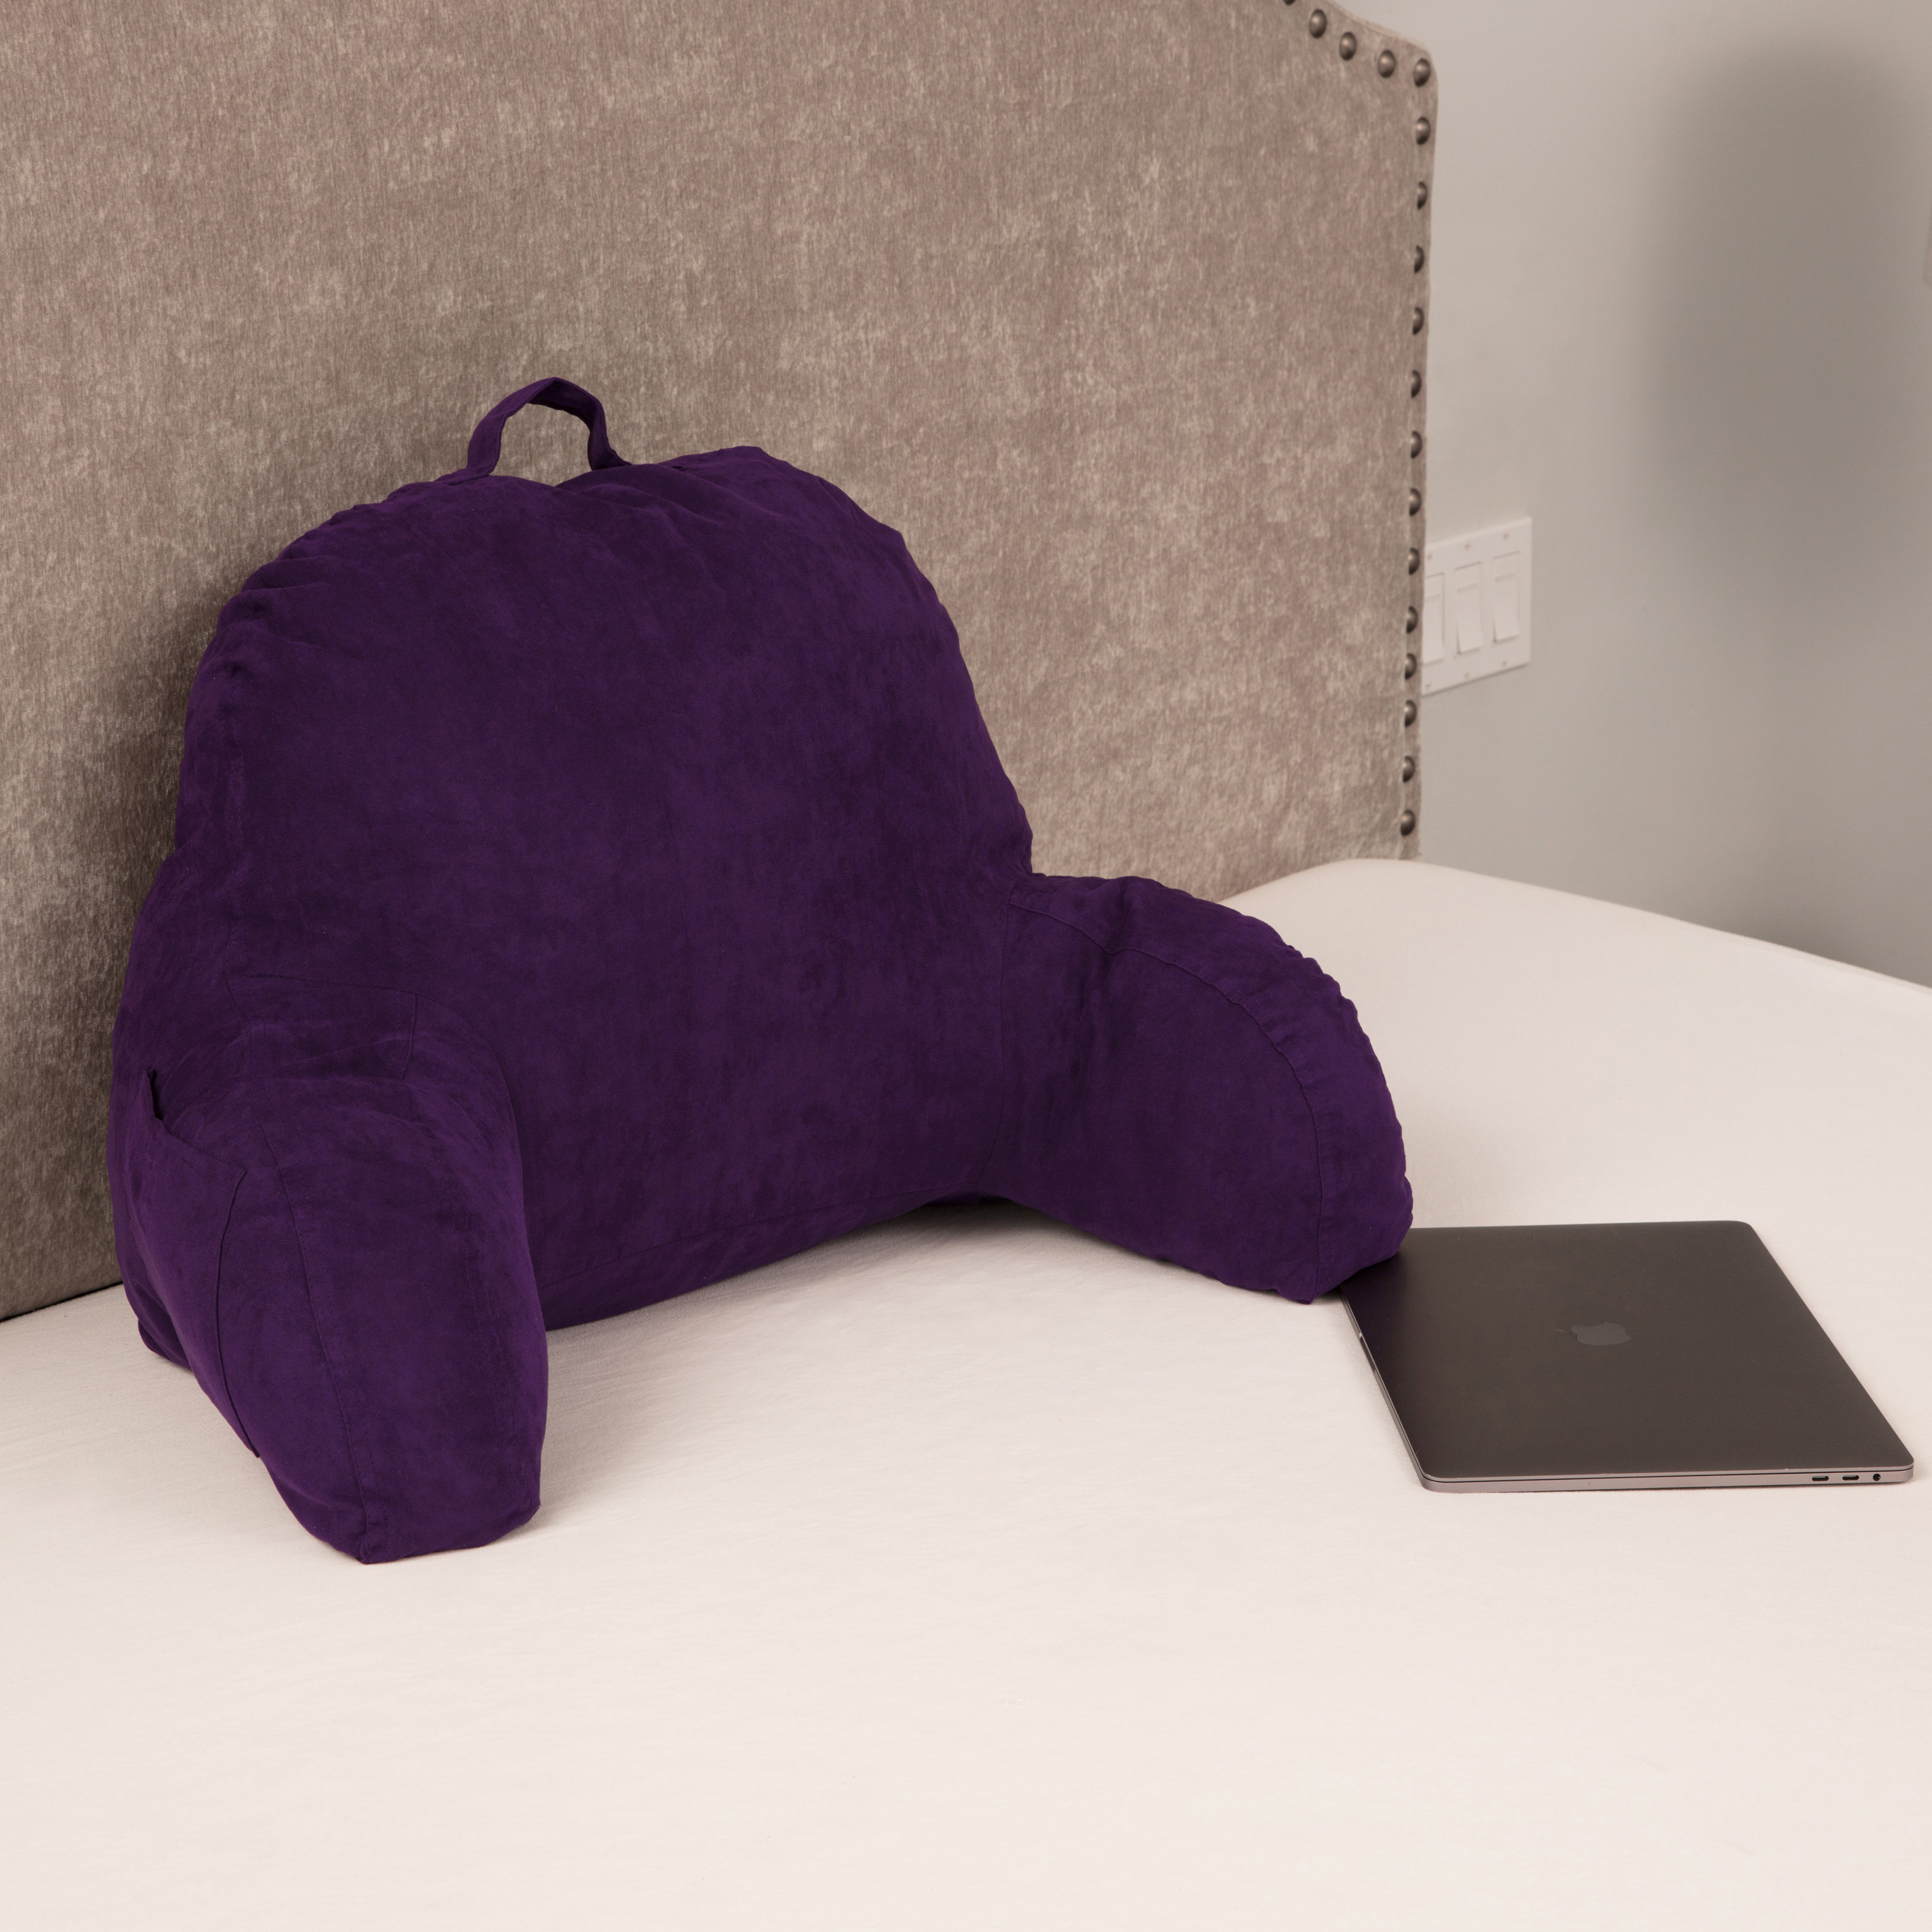 Microsuede-Bed-Rest-Reading-and-Bed-Rest-Lounger-Bed-Pillow thumbnail 38